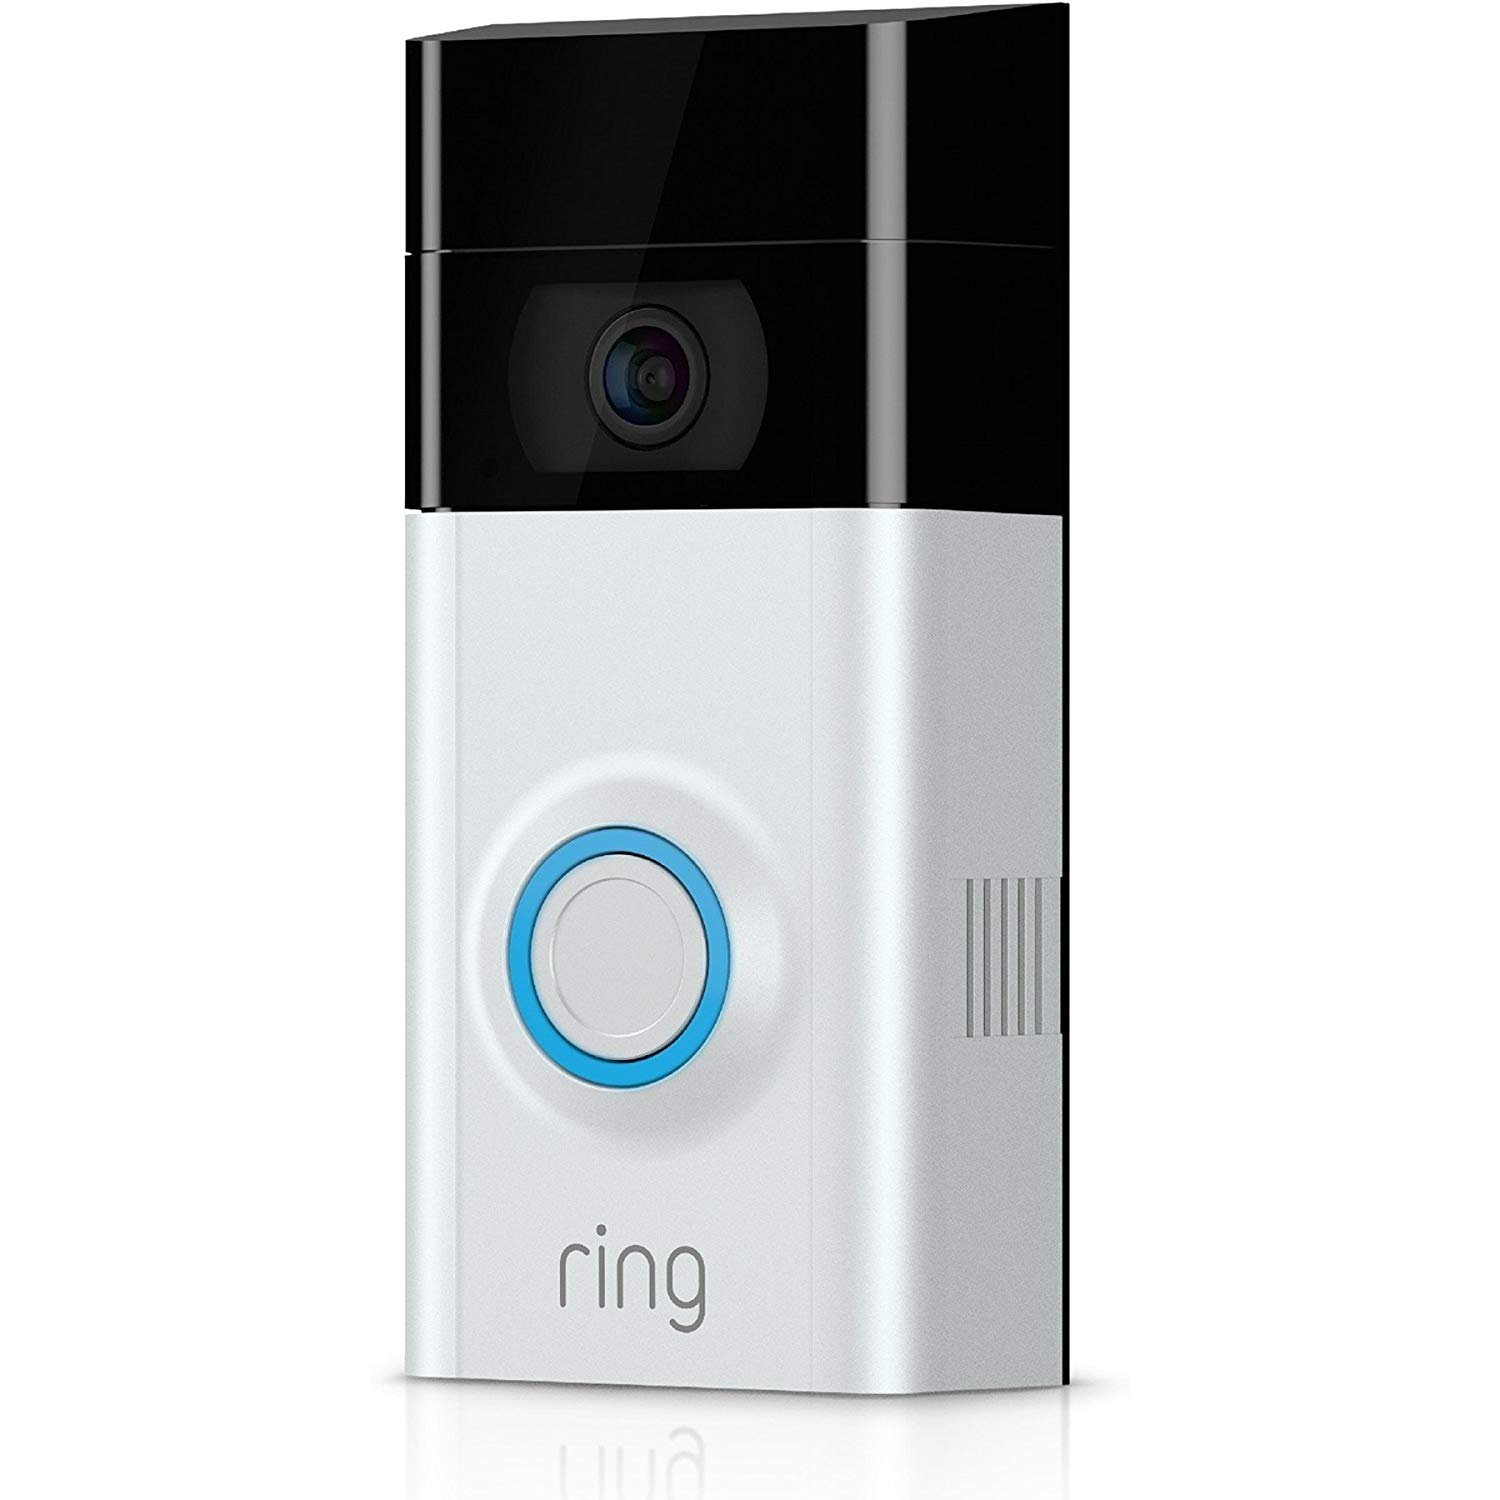 ring video doorbell 2 sonnette vid o 1080 hd avec syst me audio bidirectionnel d tection de. Black Bedroom Furniture Sets. Home Design Ideas